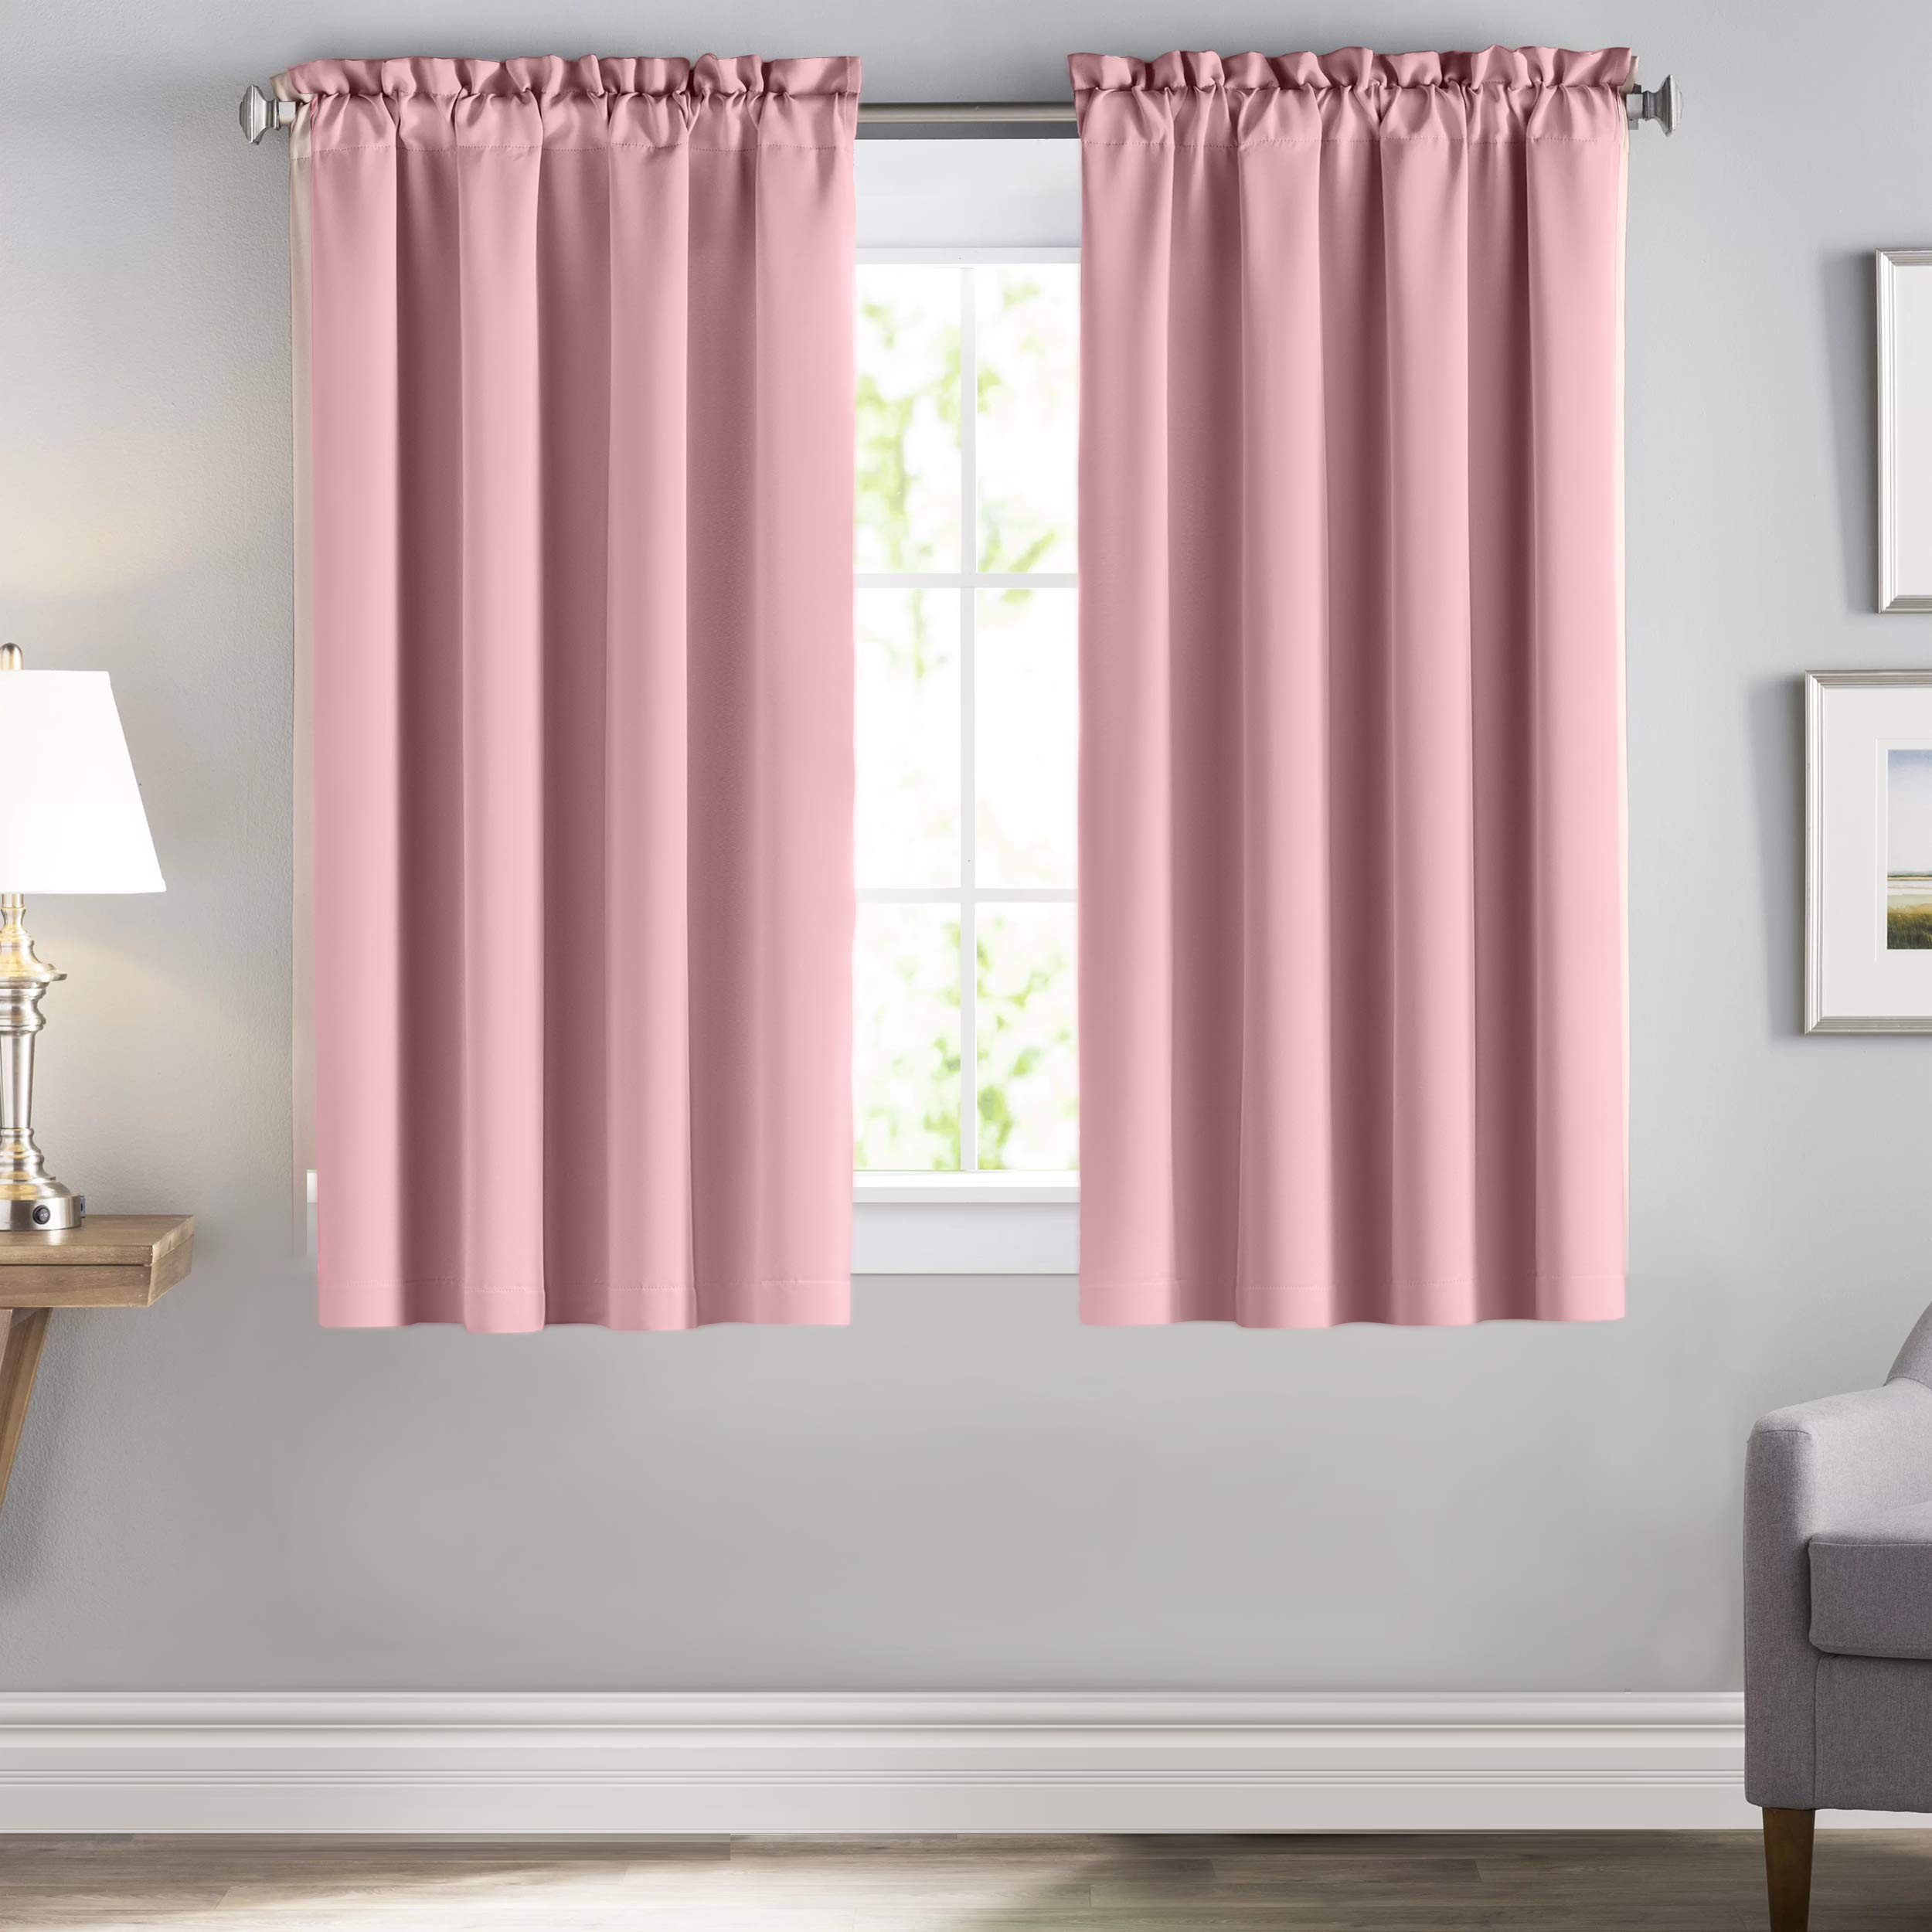 downluxe Room Darking Rod Pocket Curtains for Kid's Room - Nursery Essential Thermal Insulated Solid Rod Pocket Drapes(2 Panels, W42 x L63 Inches, Baby Pink)